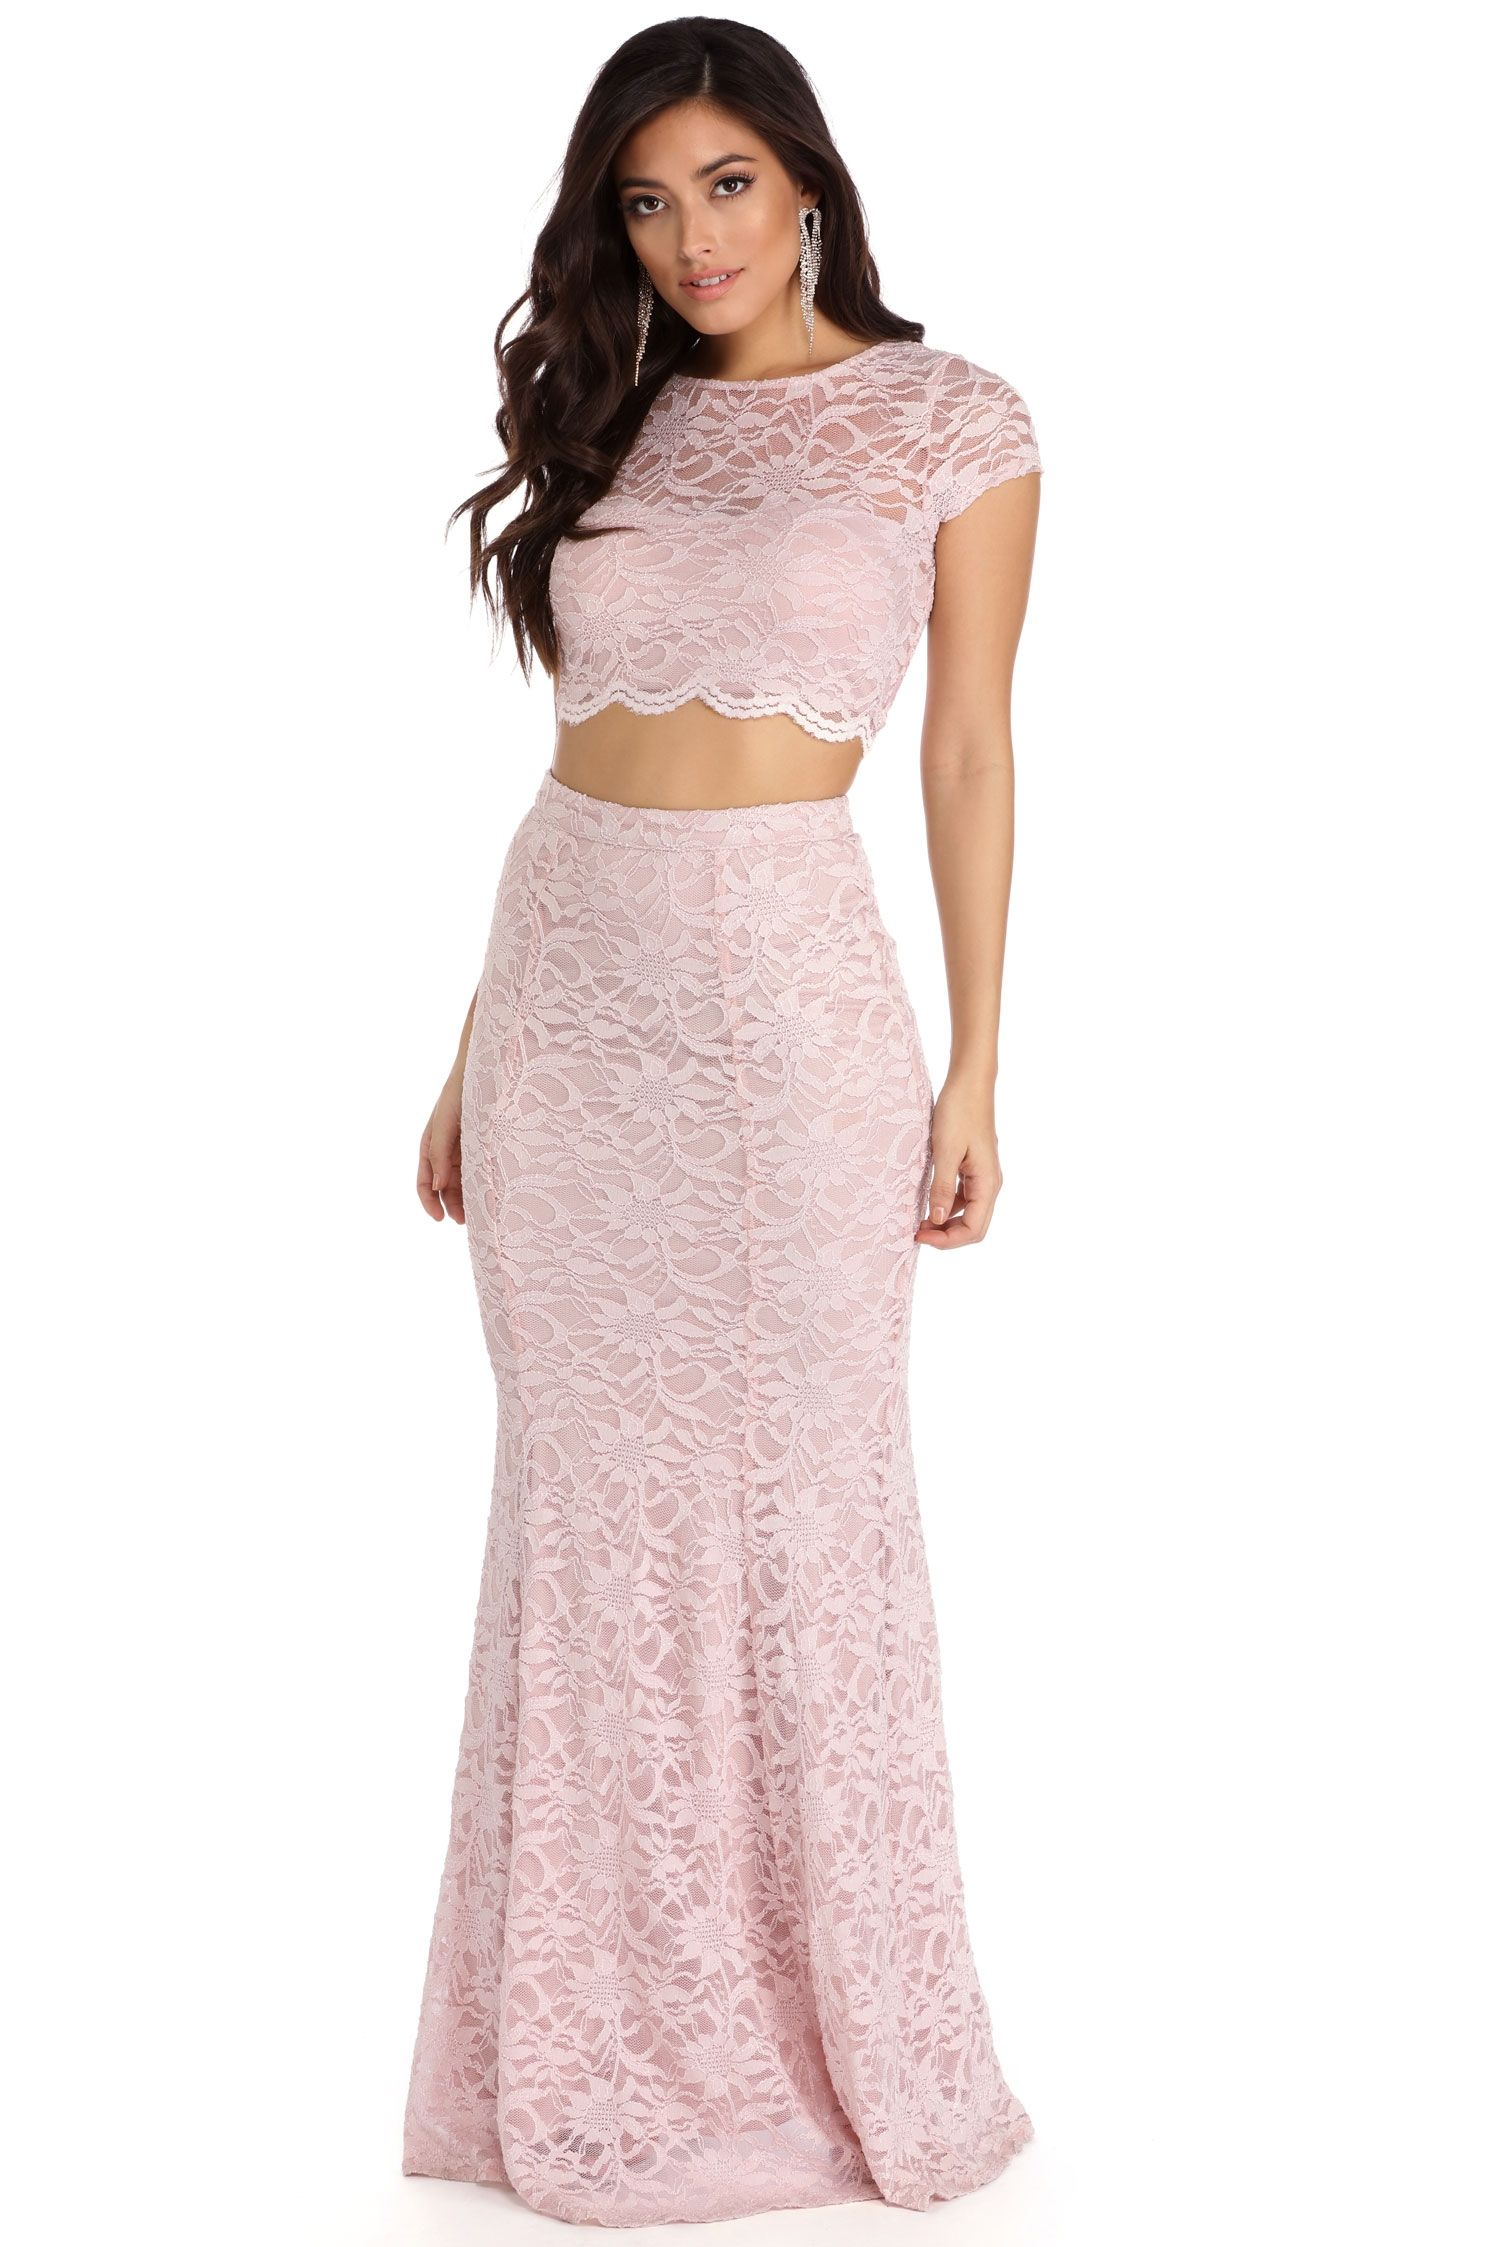 Adelynn Pink Scalloped Lace Two Piece Classy Party Outfit Lace Formal Dress Formal Dresses Long Plus Size [ 2247 x 1500 Pixel ]